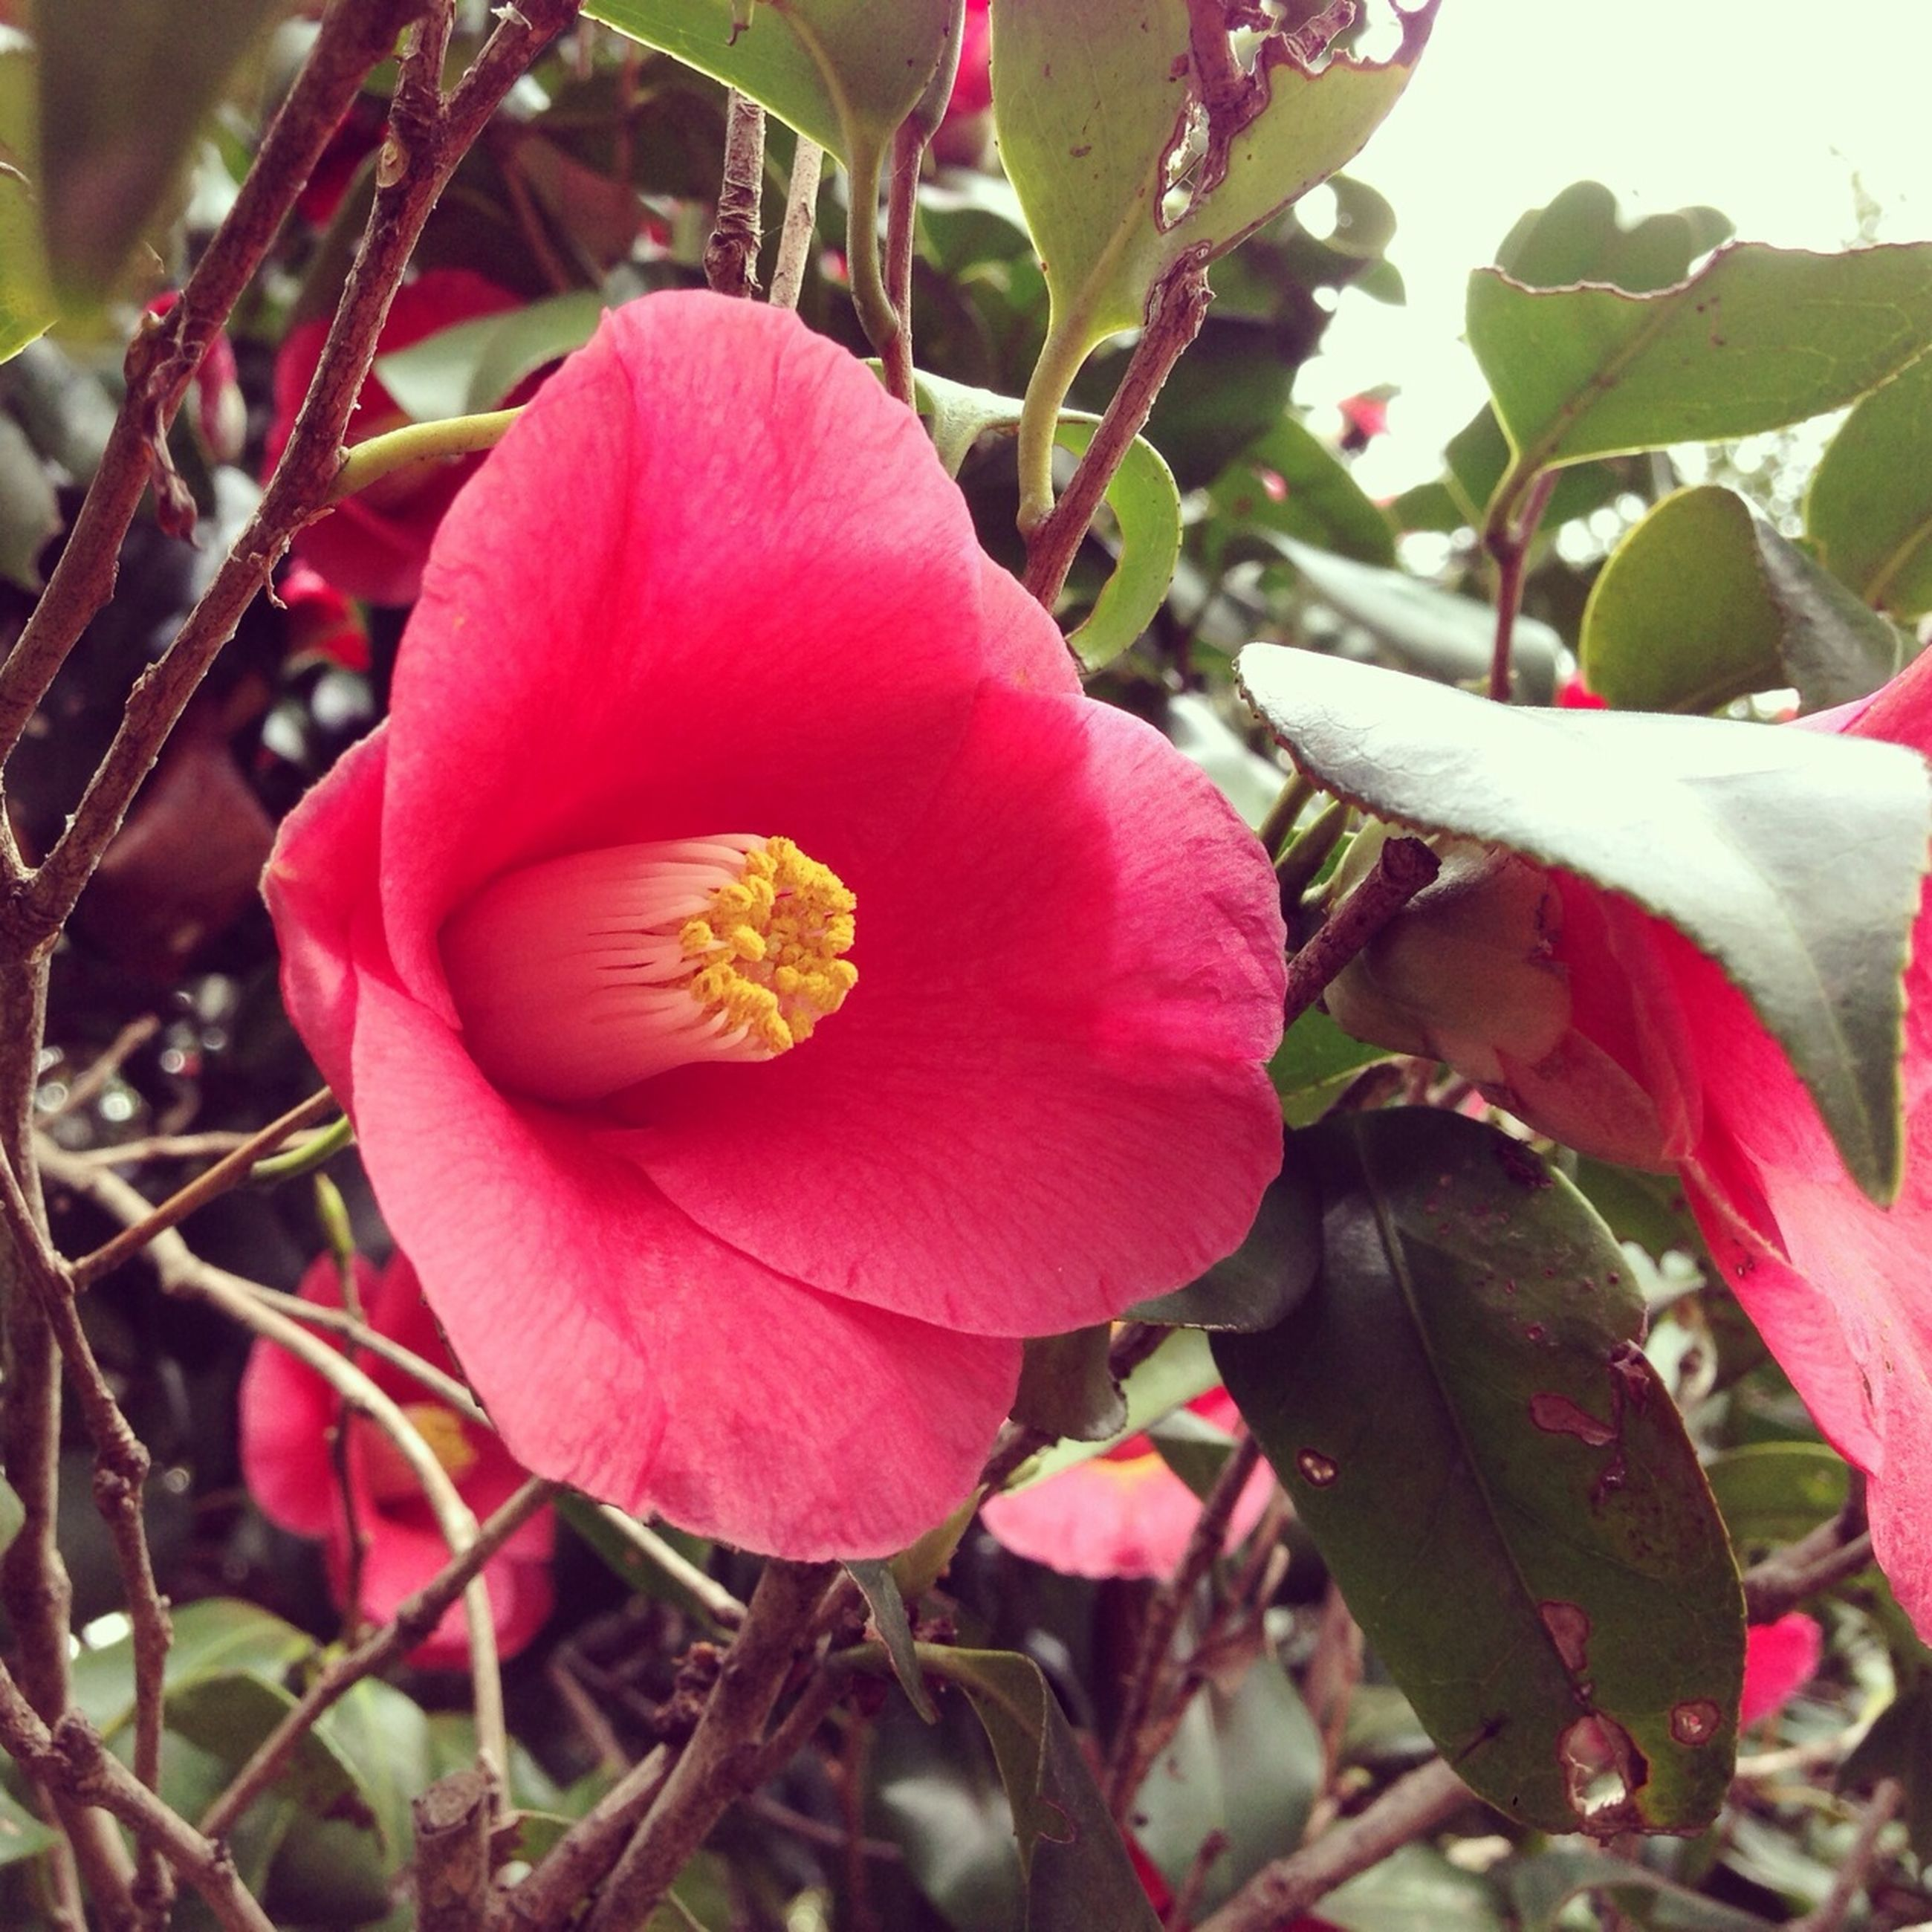 flower, petal, freshness, growth, fragility, flower head, beauty in nature, leaf, close-up, nature, pink color, blooming, plant, red, focus on foreground, in bloom, blossom, single flower, bud, stamen